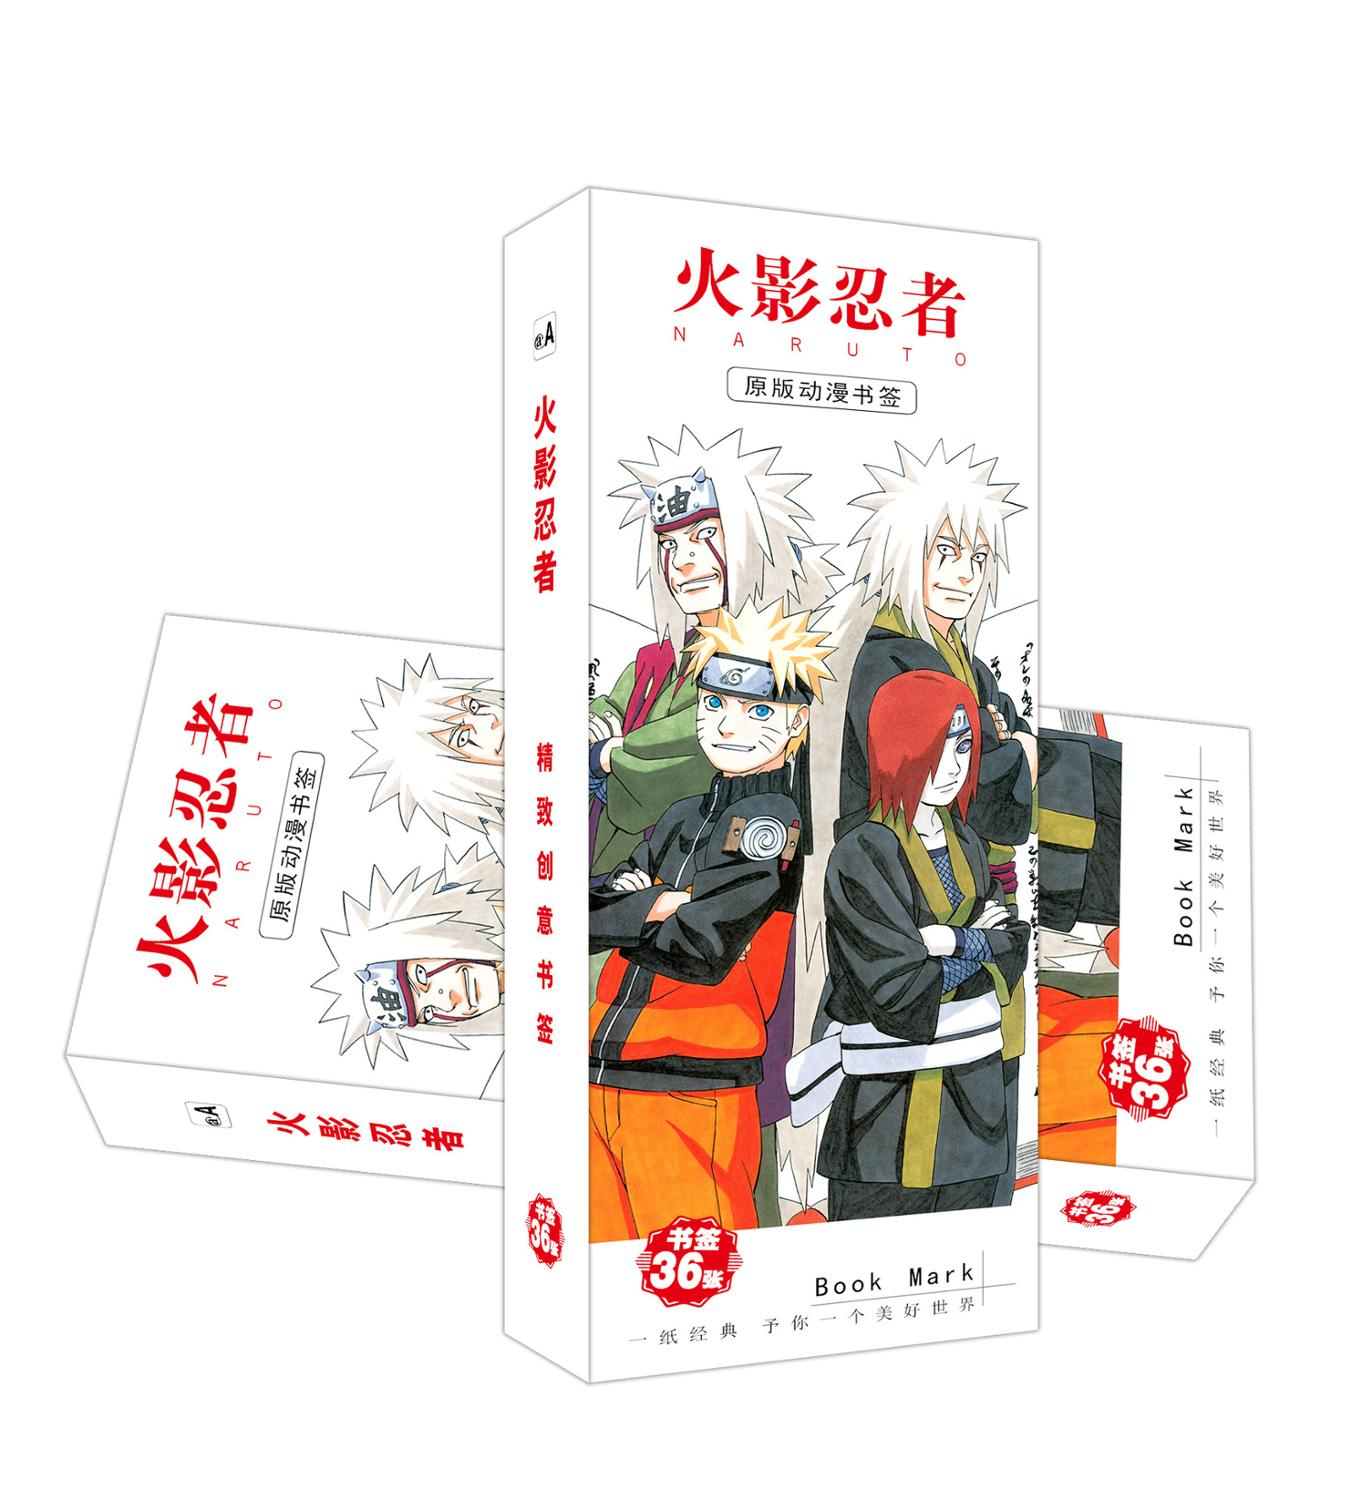 36 Pcs/Set New Arrived Naruto Anime Paper Bookmark Stationery Bookmarks Book Holder Message Card Gift Stationery